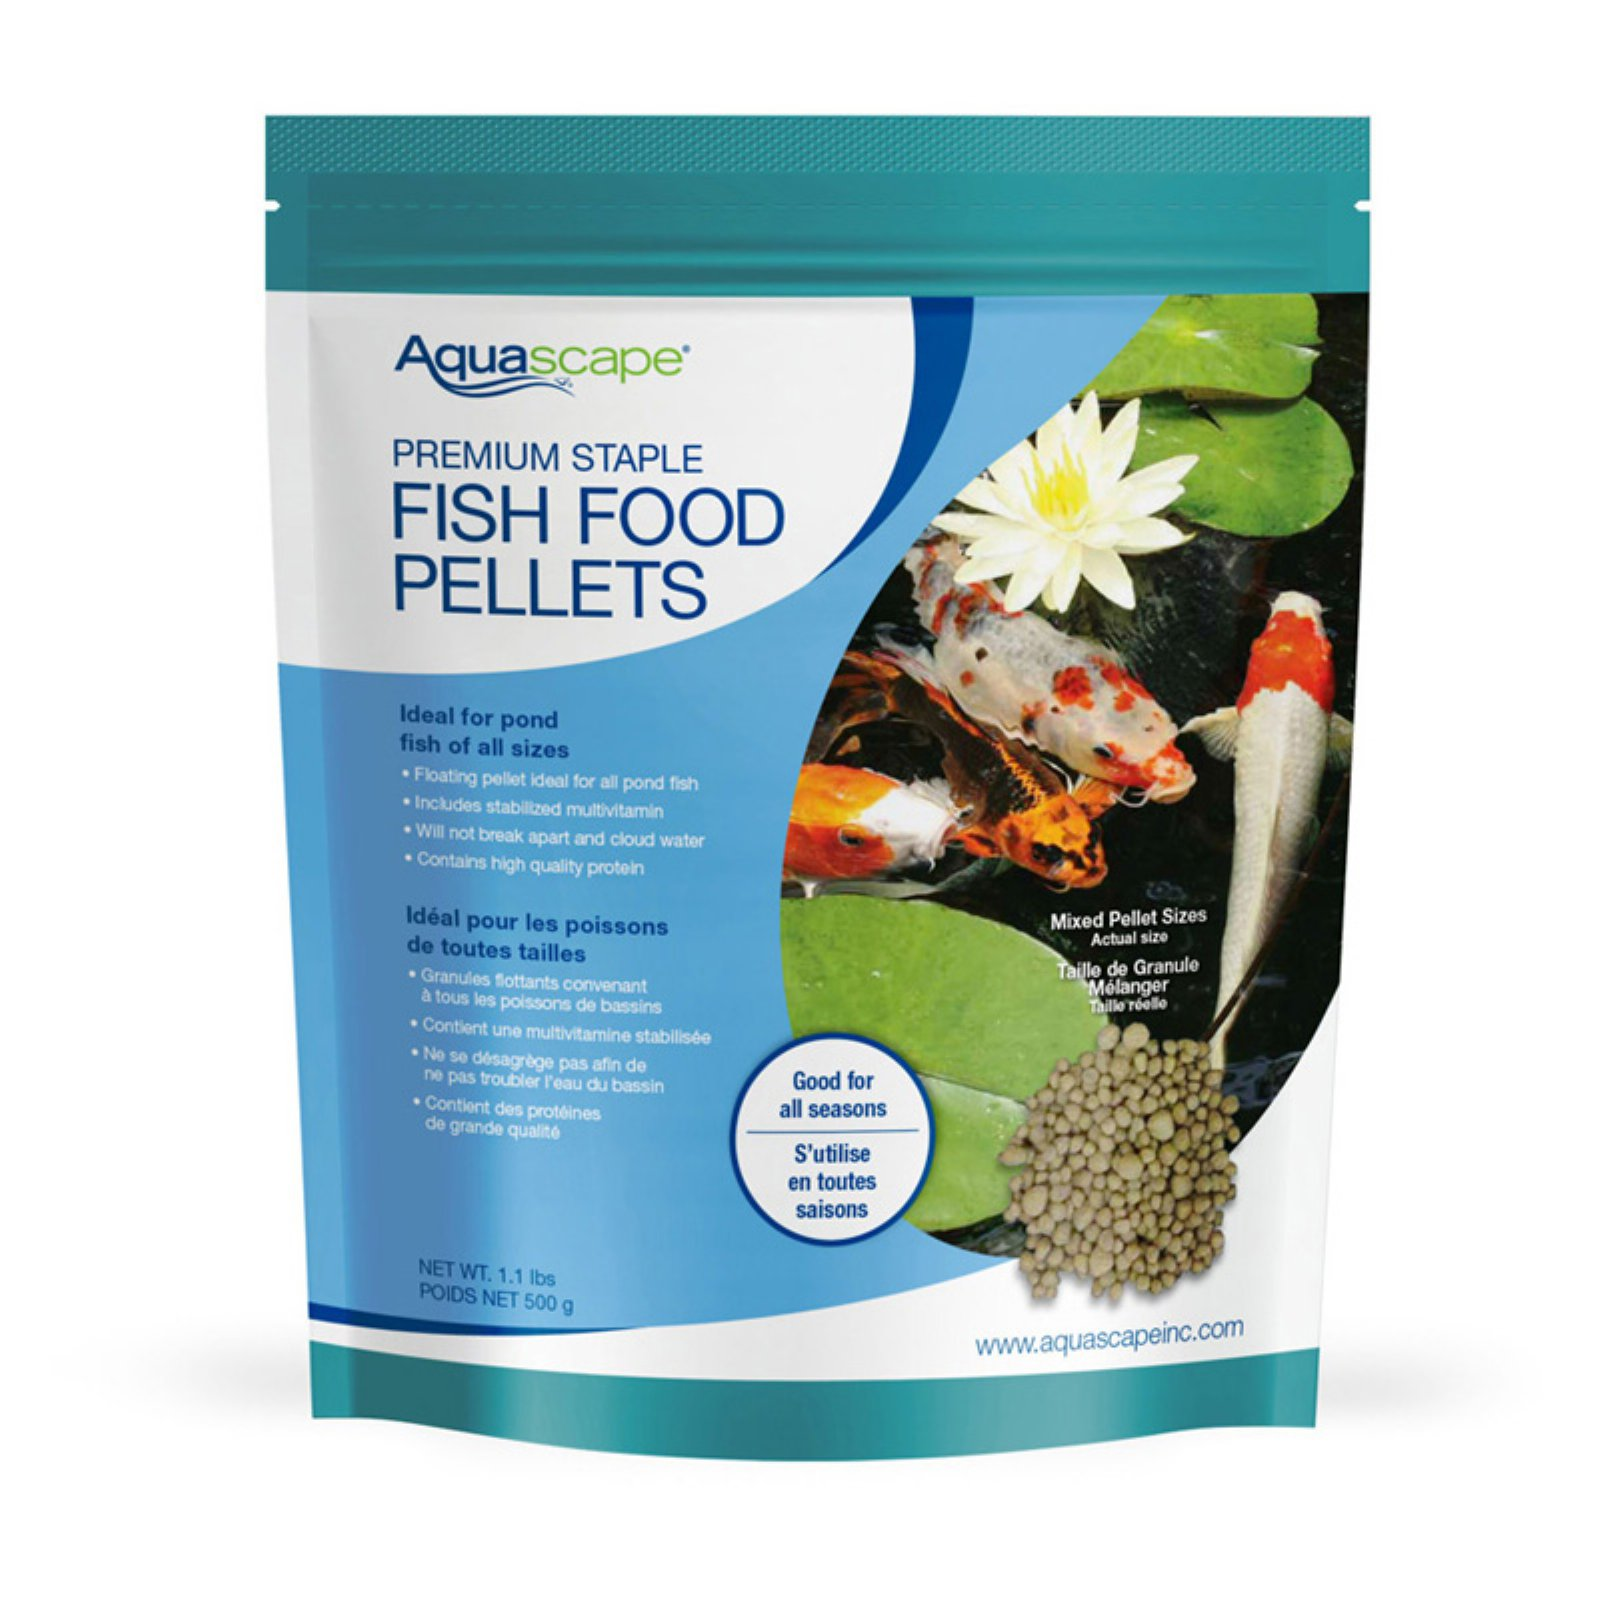 Aquascape Premium Staple Fish Food Mixed Pellets